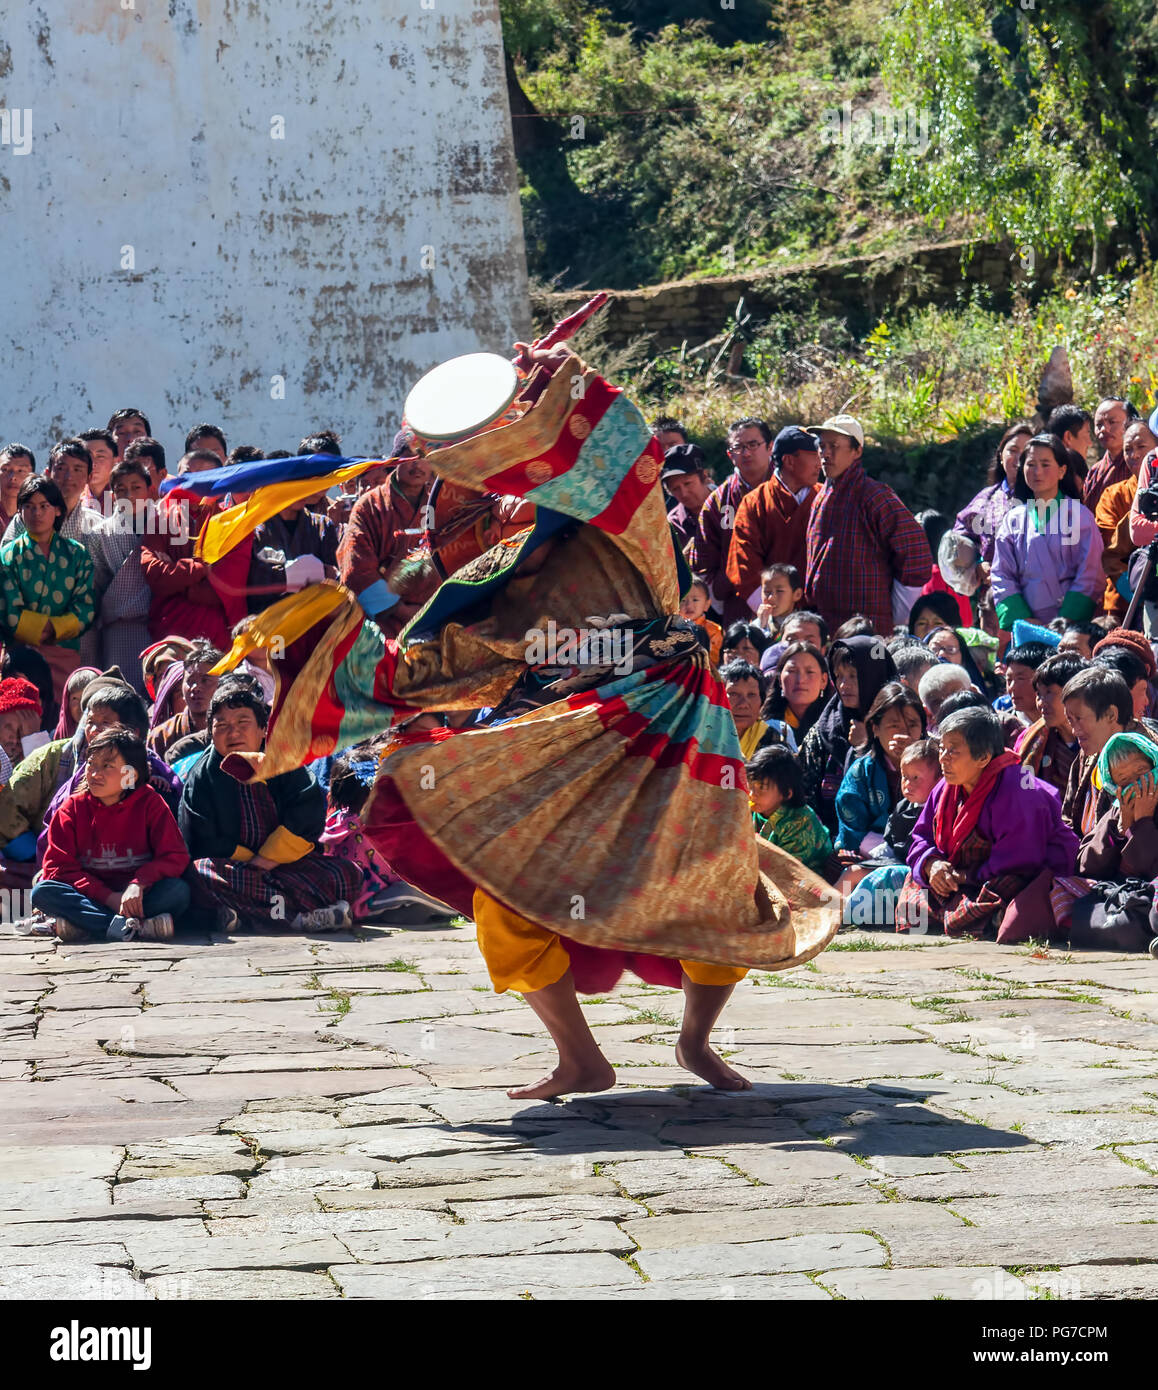 Traditional festival in Bumthang, Bhutan - Stock Image